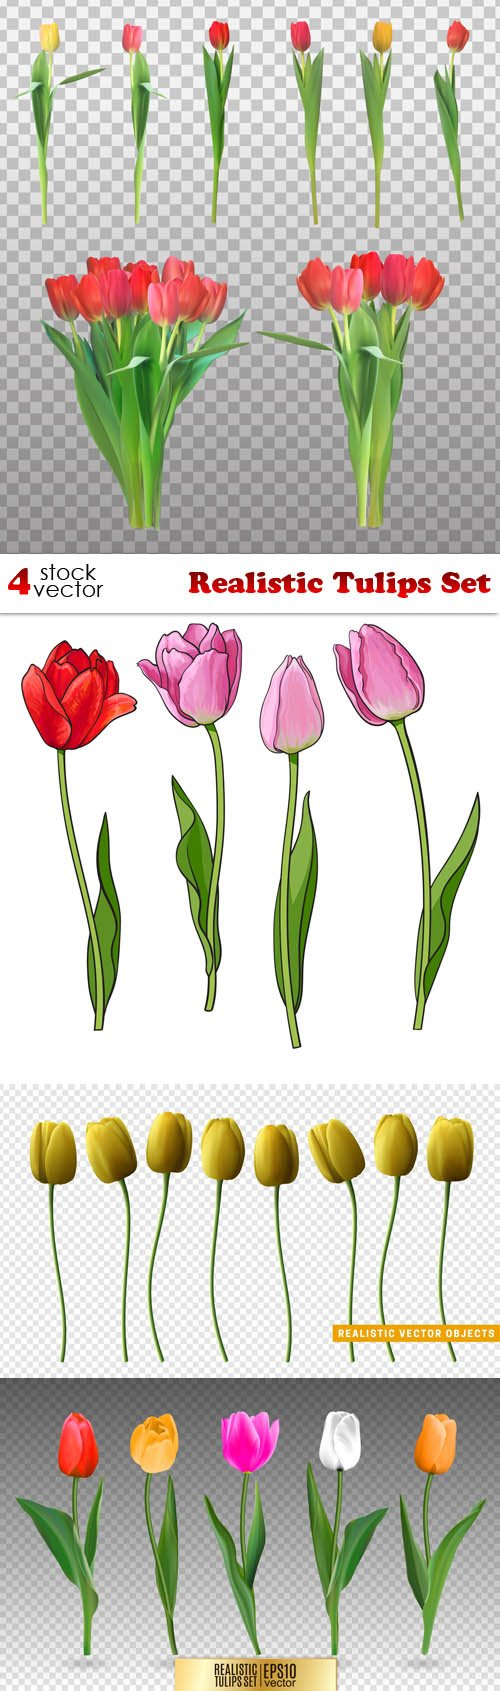 Vectors - Realistic Tulips Set